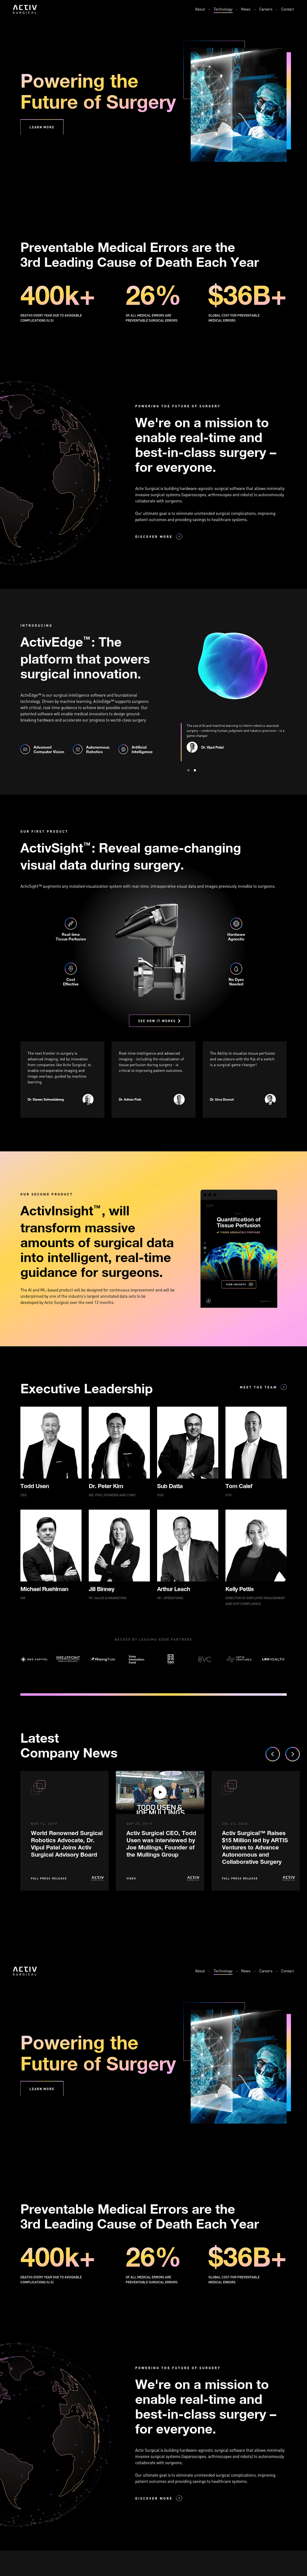 ActivSurgical